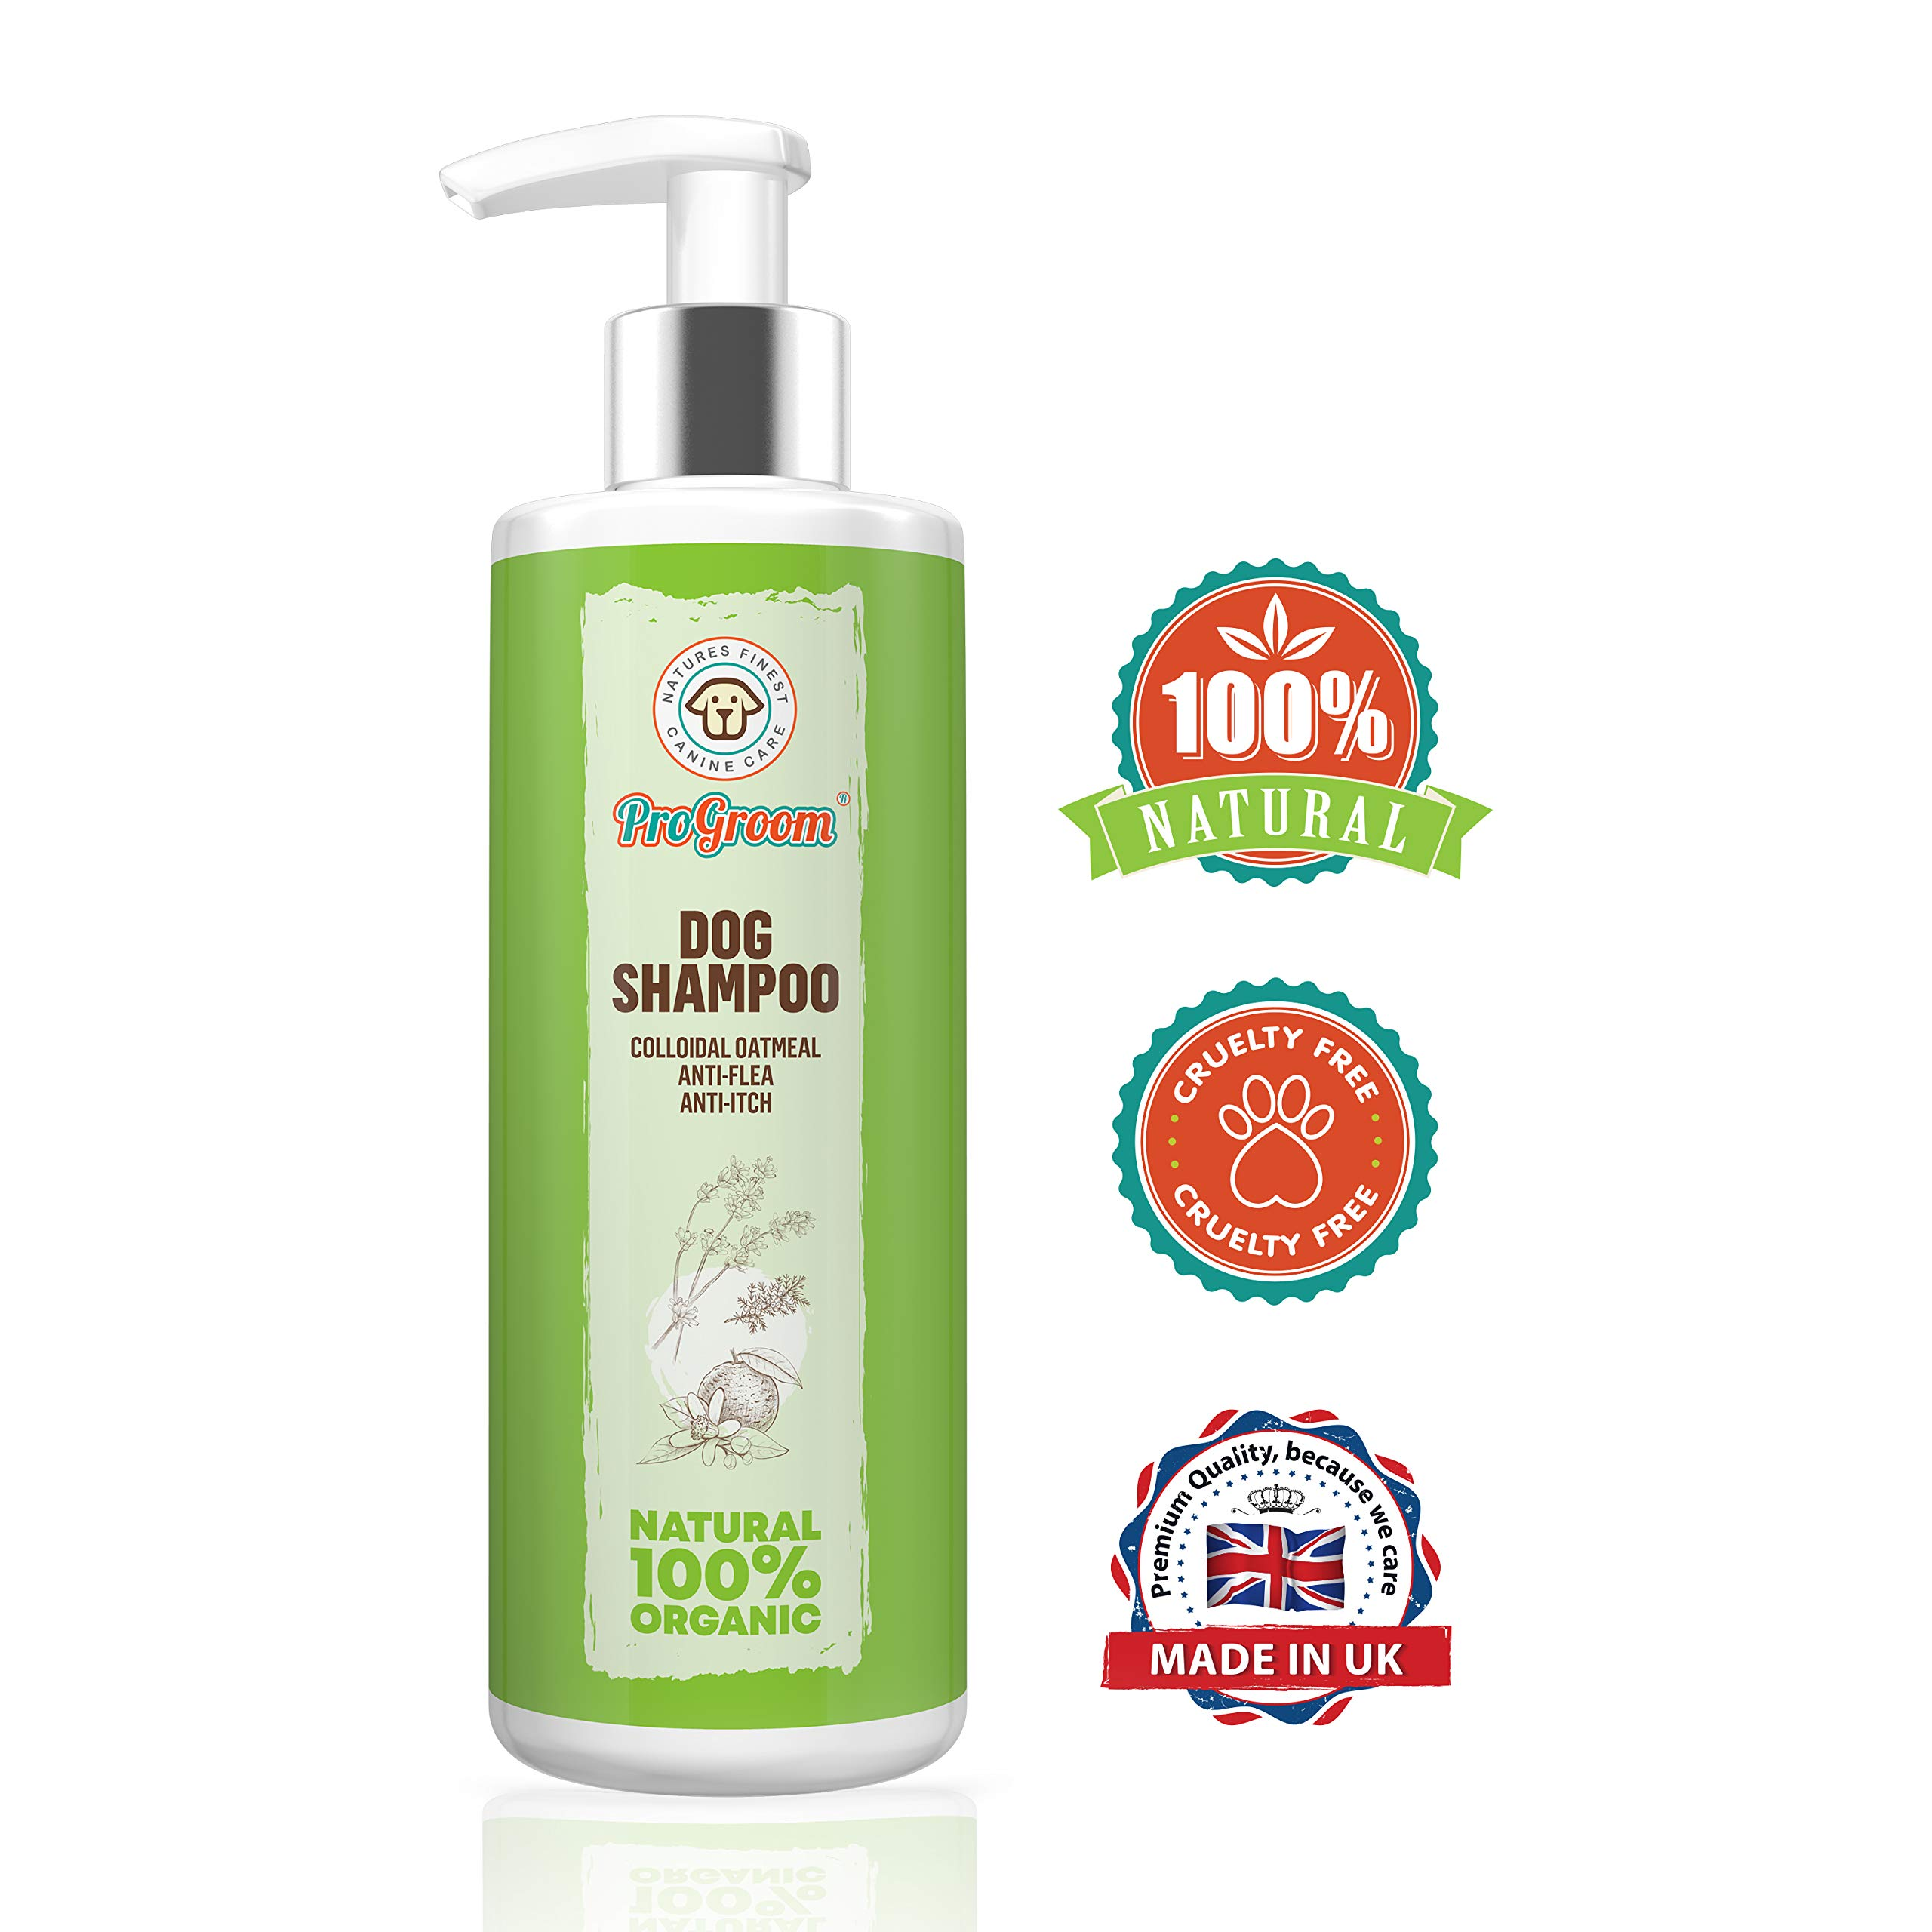 ProGroom Natural Oatmeal Dog Shampoo – Flea Shampoo Treatment and Itchy Skin Relief Formula – Grooming Puppy Sensitive Shampoo and Conditioner